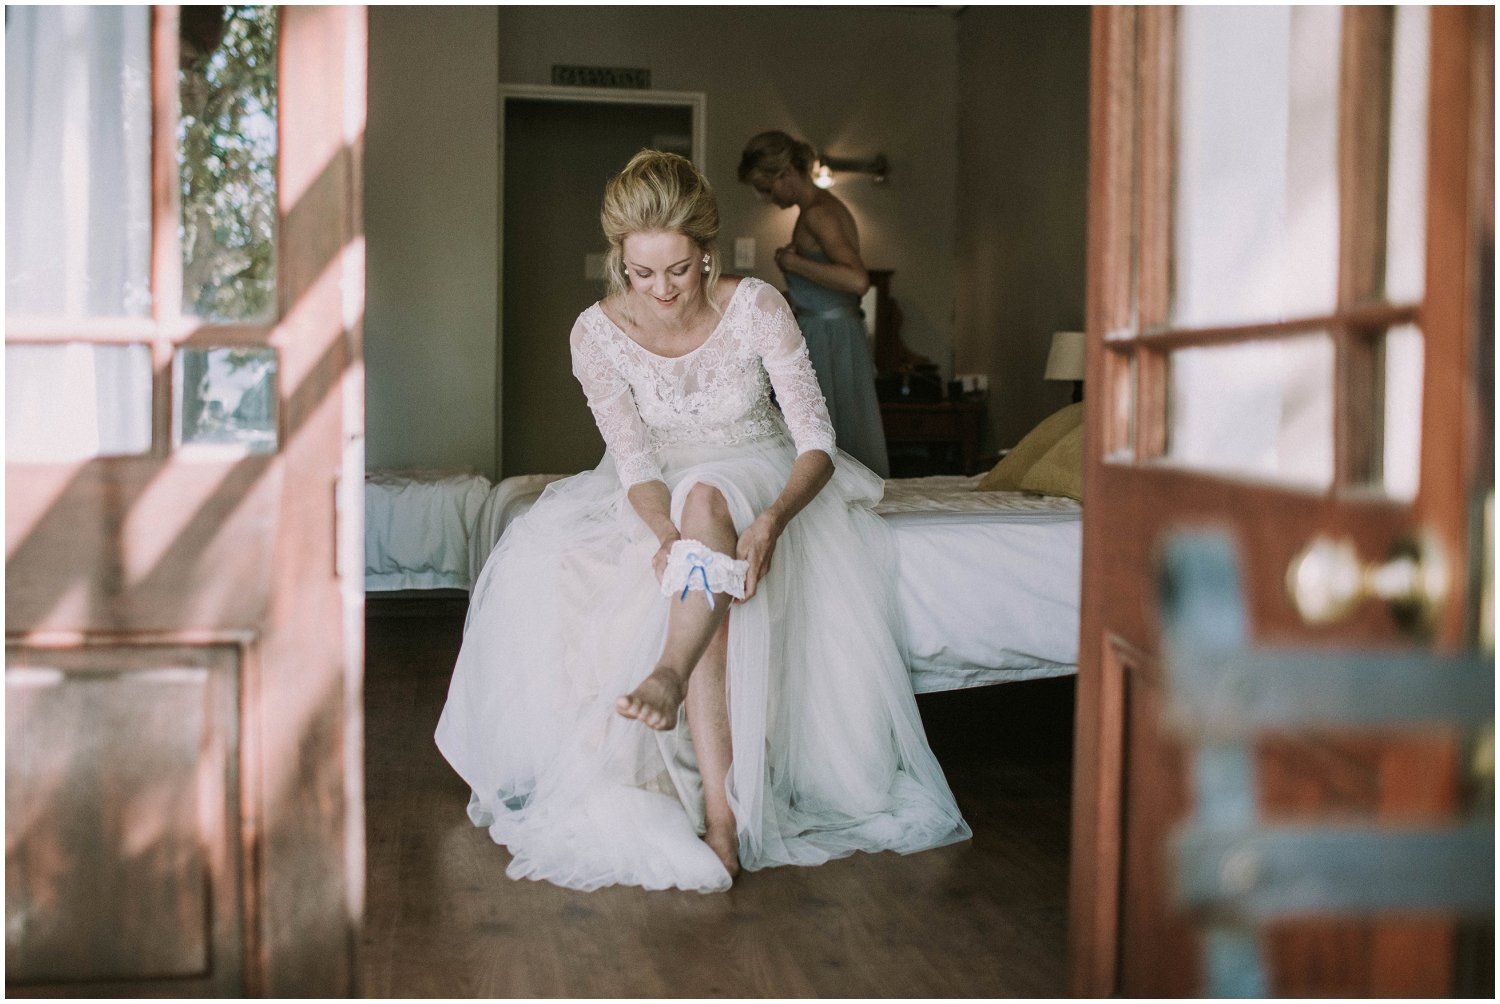 Top Wedding Photographer Cape Town South Africa Artistic Creative Documentary Wedding Photography Rue Kruger_0665.jpg